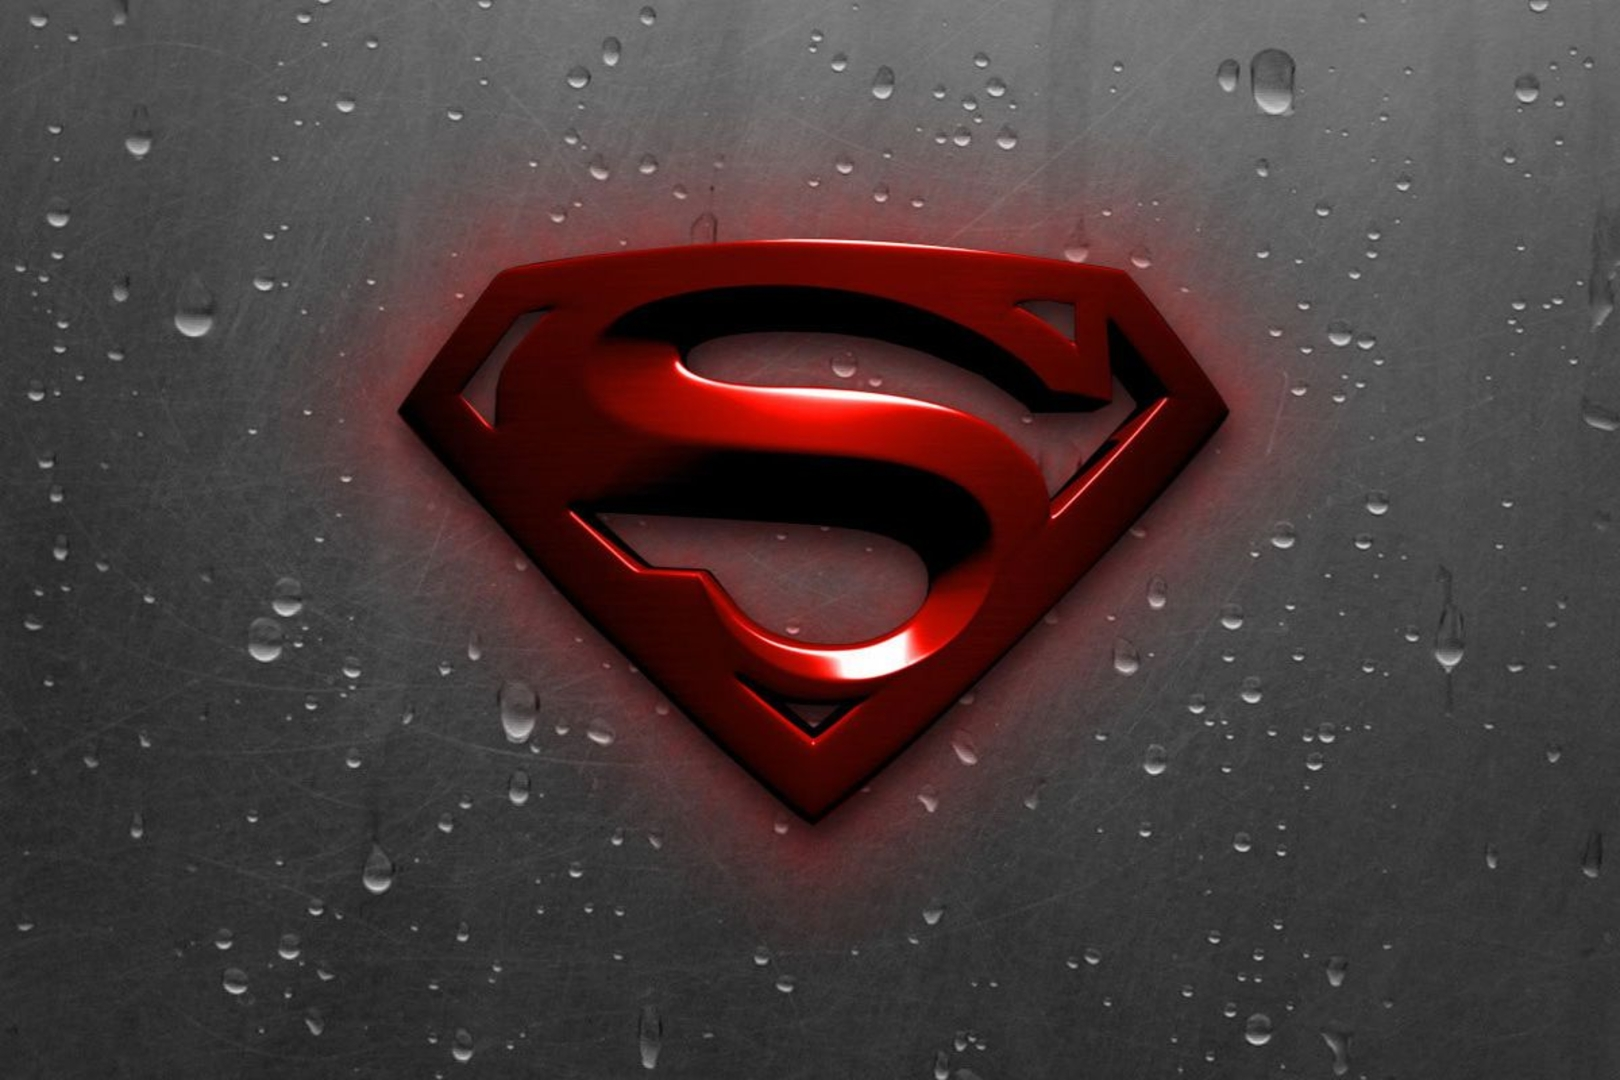 Logo Wallpaper hd 1920x1080 wallpaper Superman Logo Wallpaper hd 1620x1080